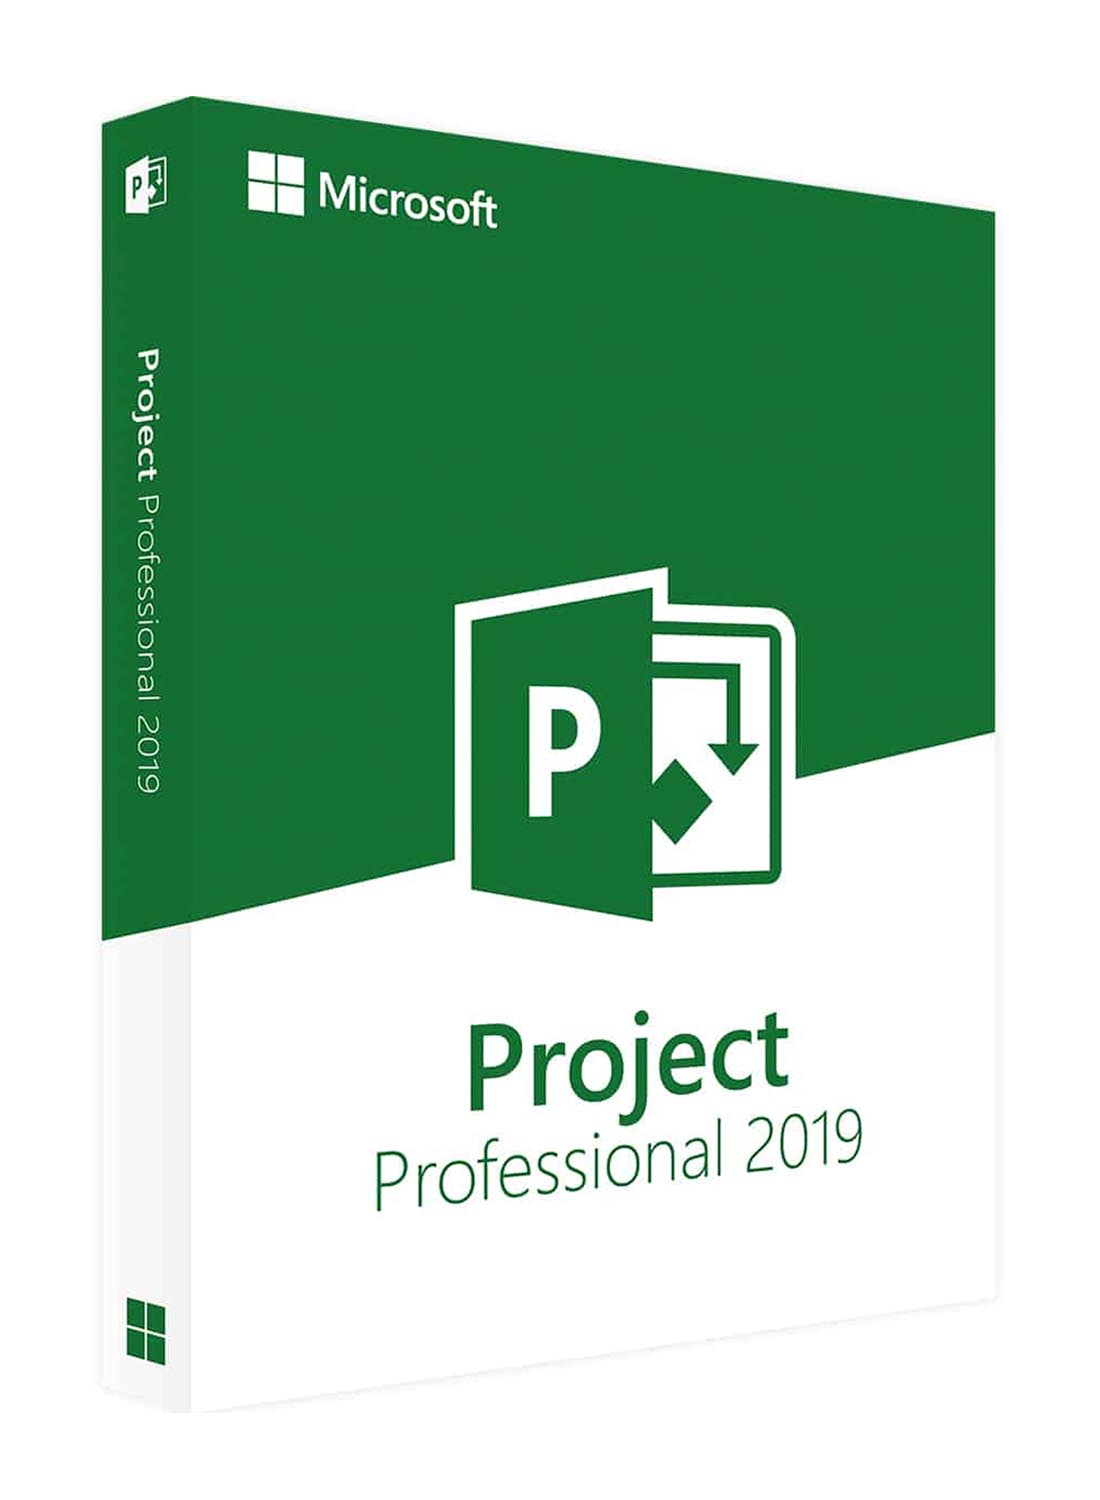 Project_2019_professional